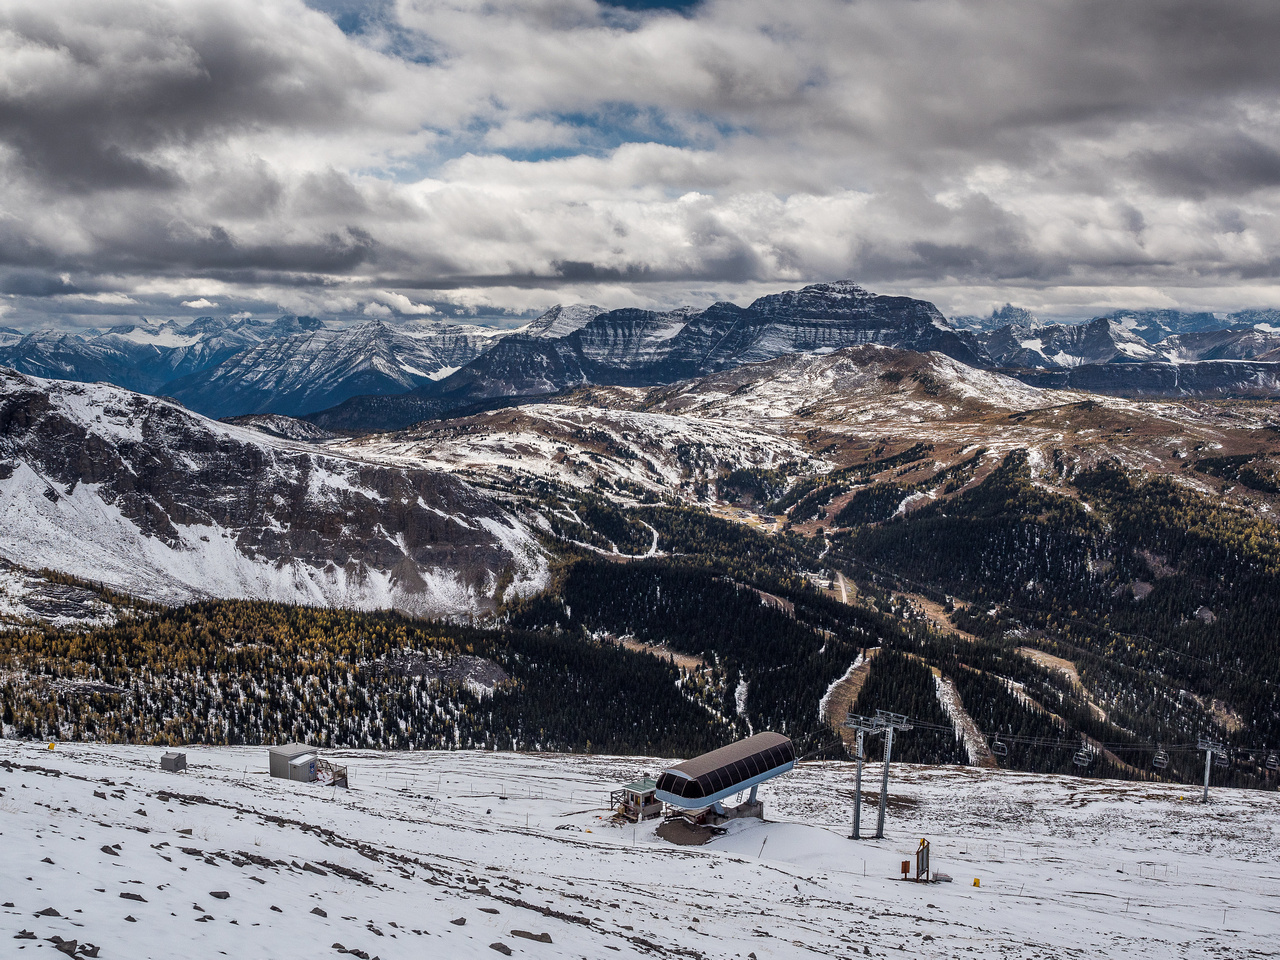 Great views over Sunshine Meadows as I descend to the top of the Goat's Eye chairlift.